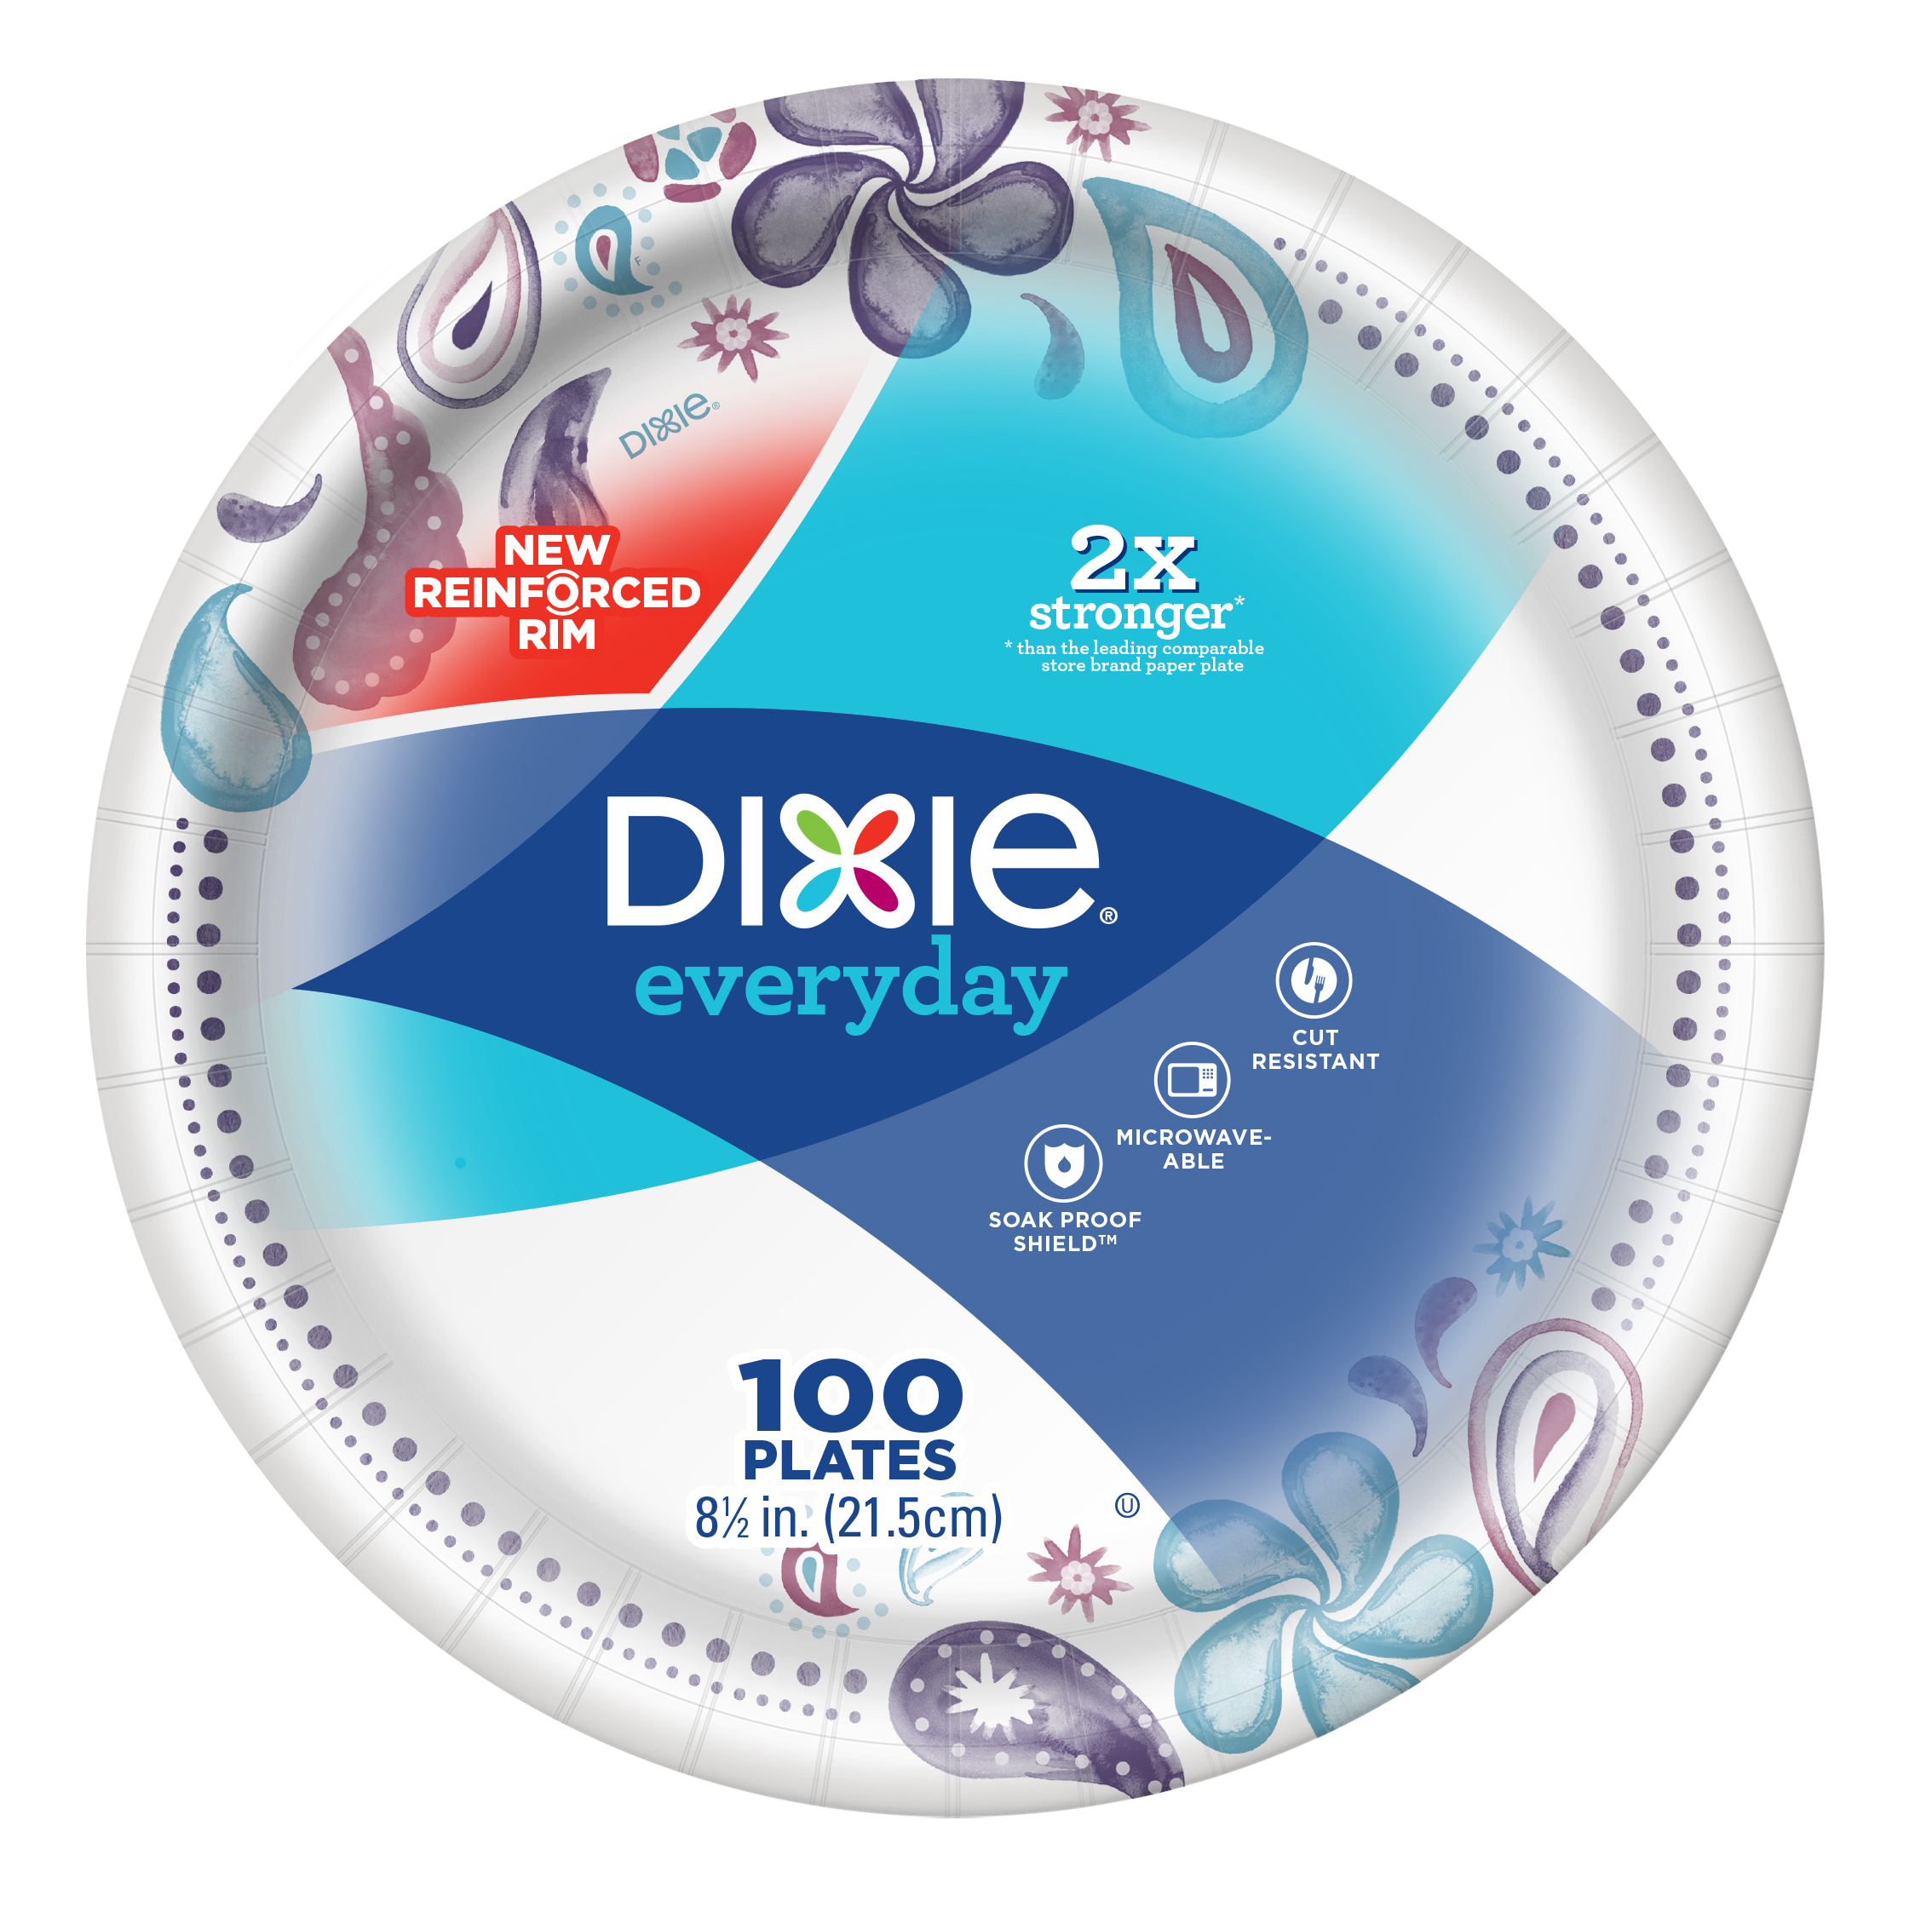 "Dixie Everyday Lunch/Light Dinner Paper Plates, 100ct, 8.5"" size"